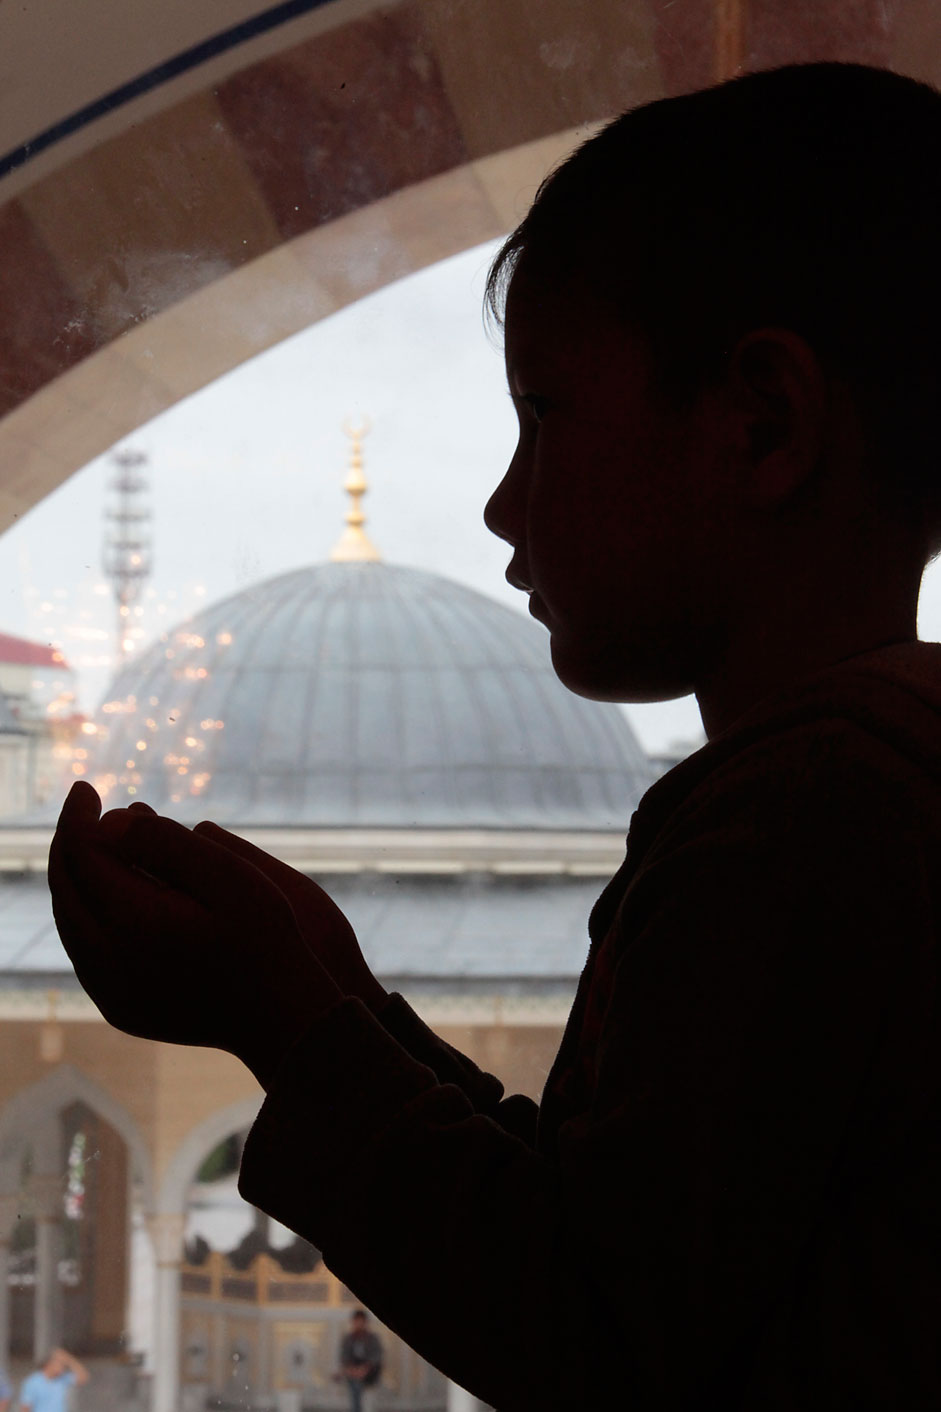 A Chechen boy performs an Eid al-Fitr prayer to mark the end of theholy fasting month of Ramadan in Chechen capital of Grozny, Russia,Friday, July 17, 2015. Eid al-Fitr prayer marks the end of the holyfasting month of Ramadan.